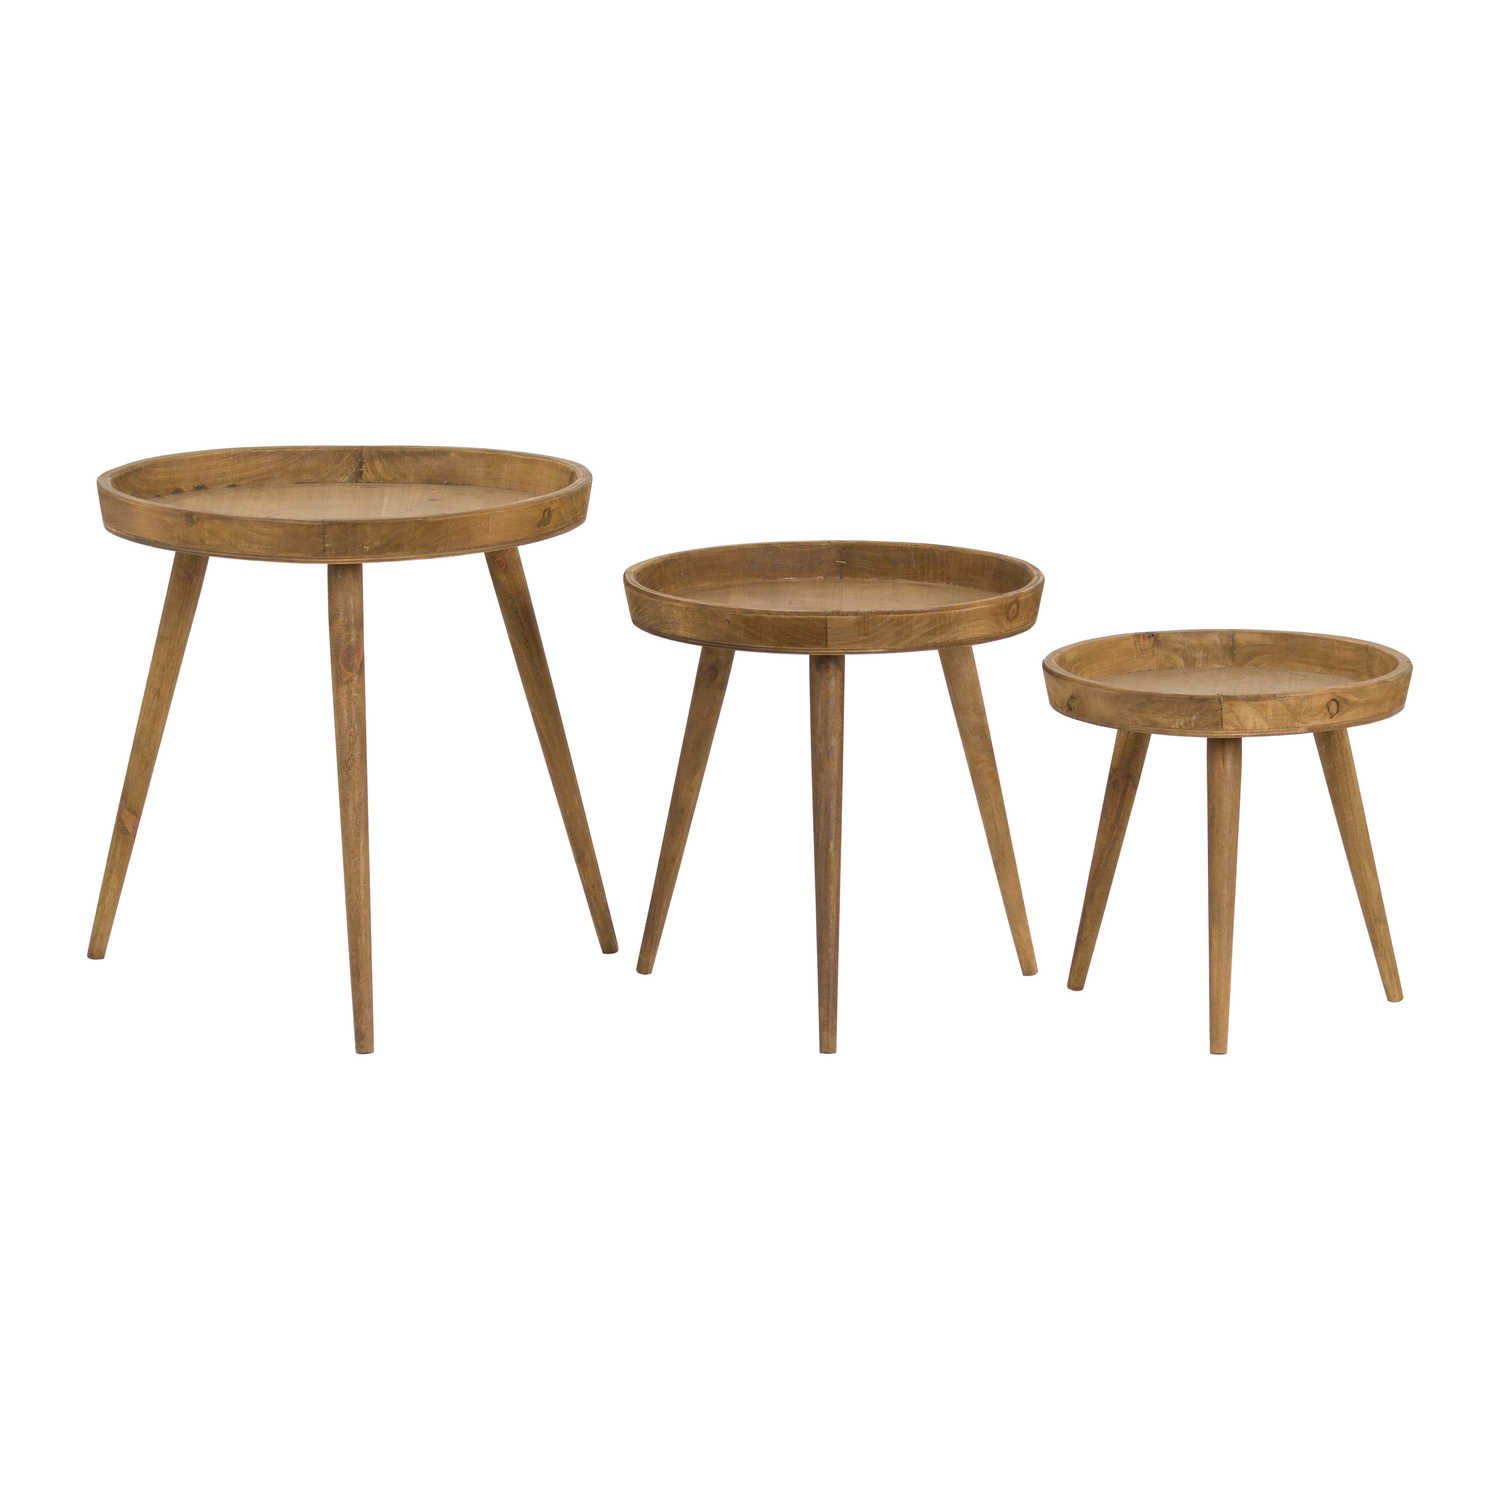 Loft Collection Set Of 3 Round Wooden Table From Baytree Interiors